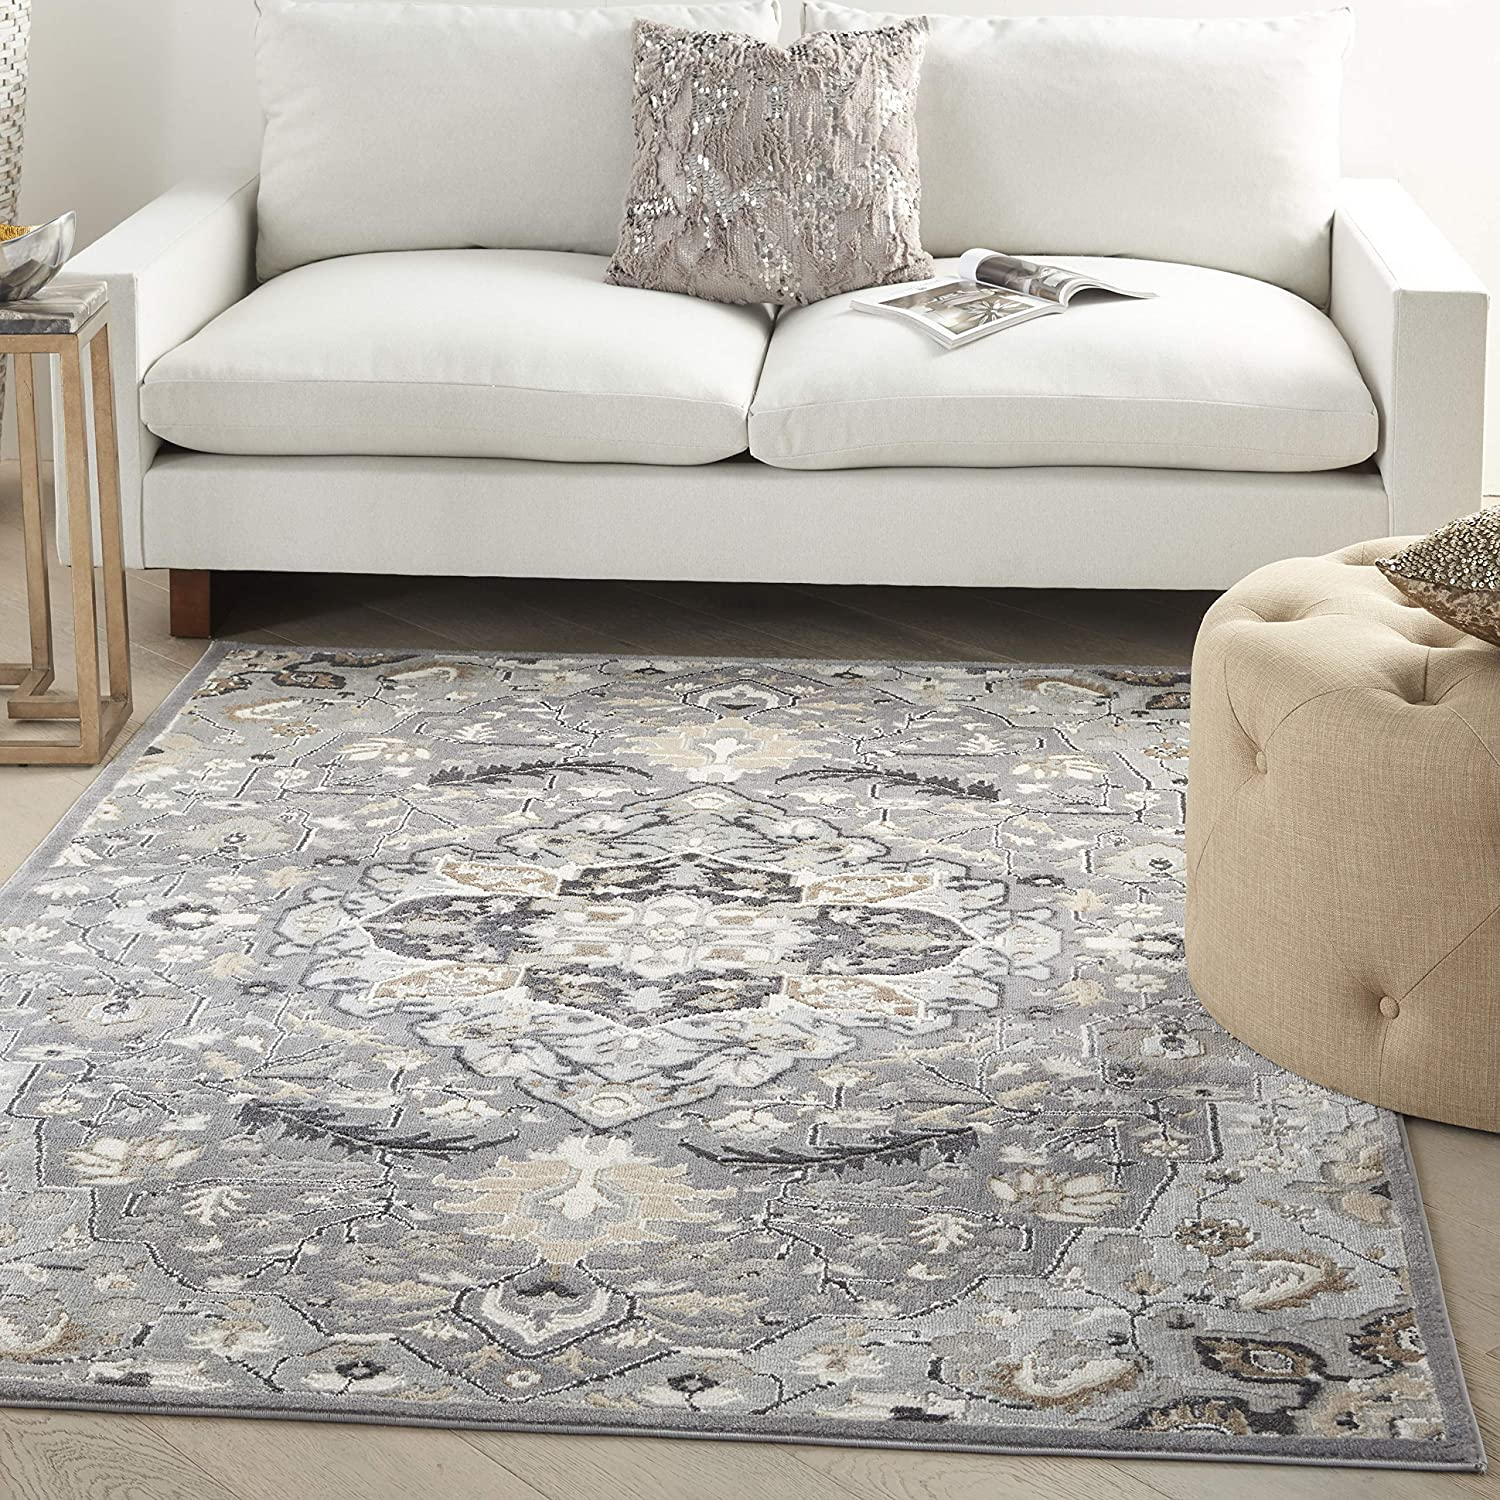 Nourison Elation レビューを書けば送料当店負担 Persian 35%OFF Floral Traditional Grey Area 9' R 12' x